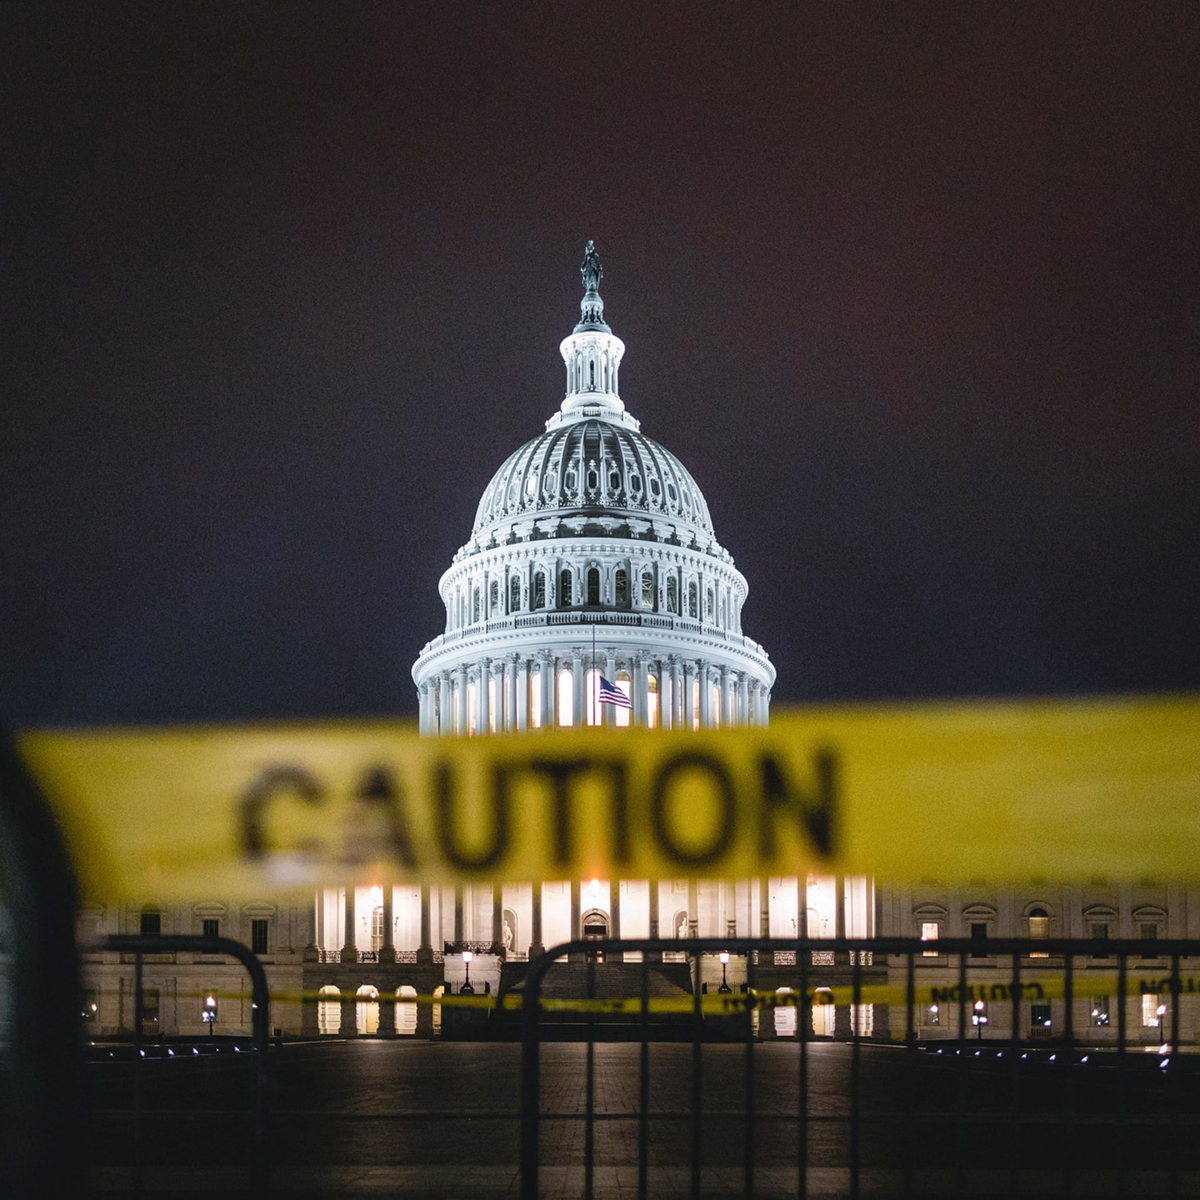 Capitol building with caution tape